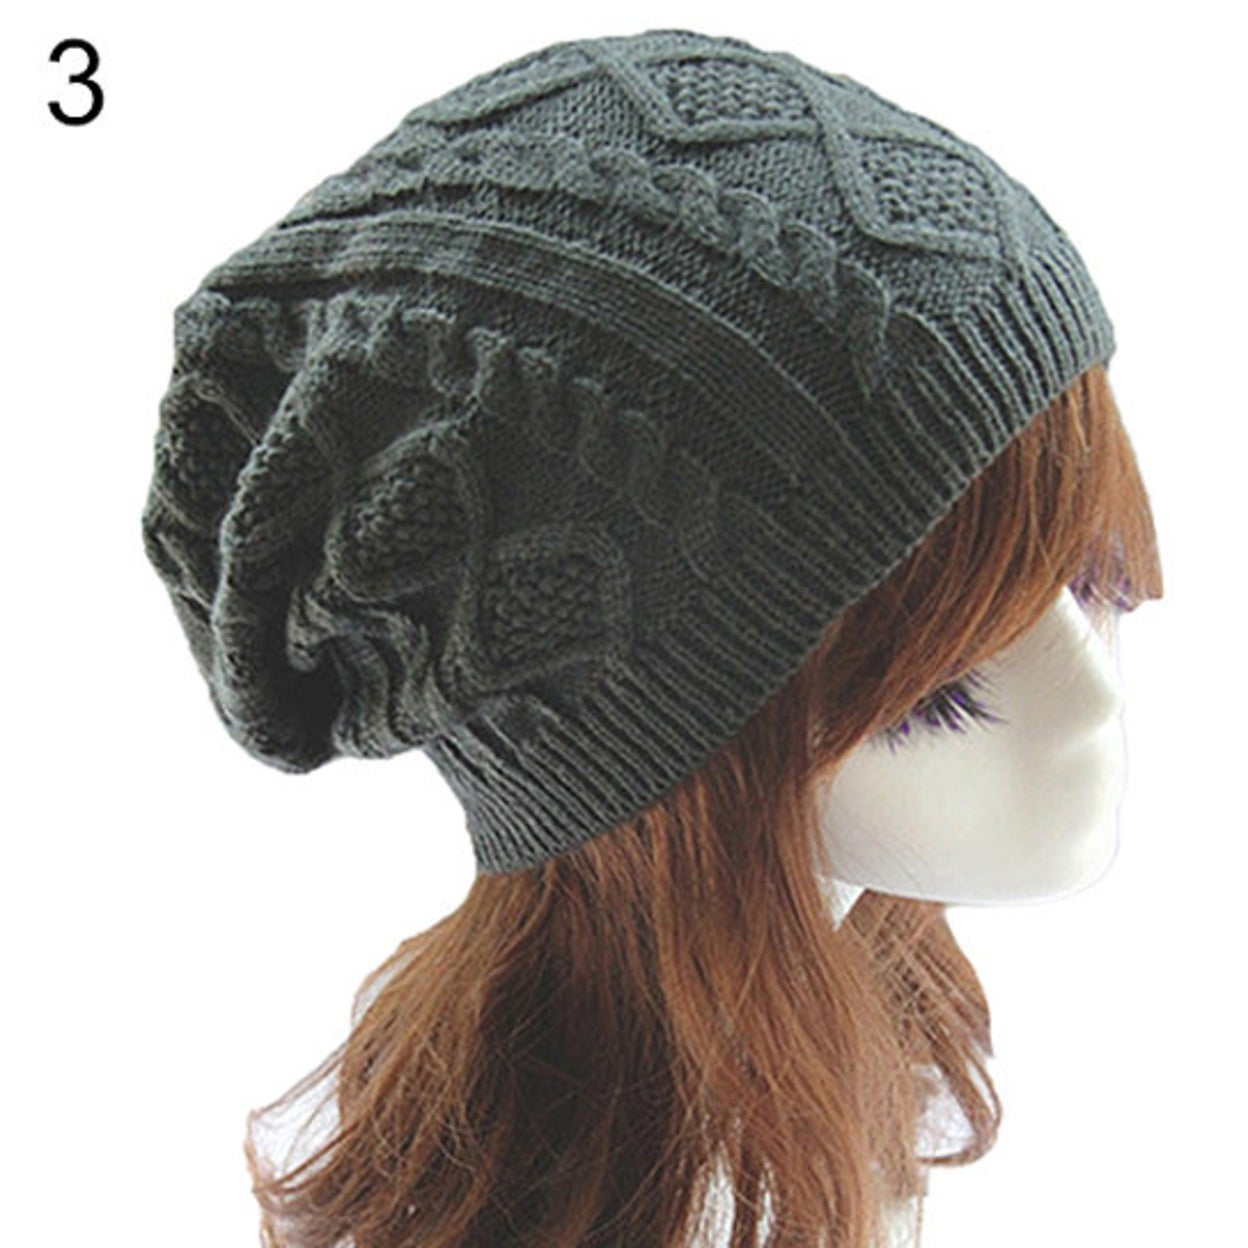 611926aaecb Shop Lady Women s Knit Winter Warm Crochet Hat Braided Baggy Beret Beanie  Cap - Free Shipping On Orders Over  45 - Overstock.com - 23172784